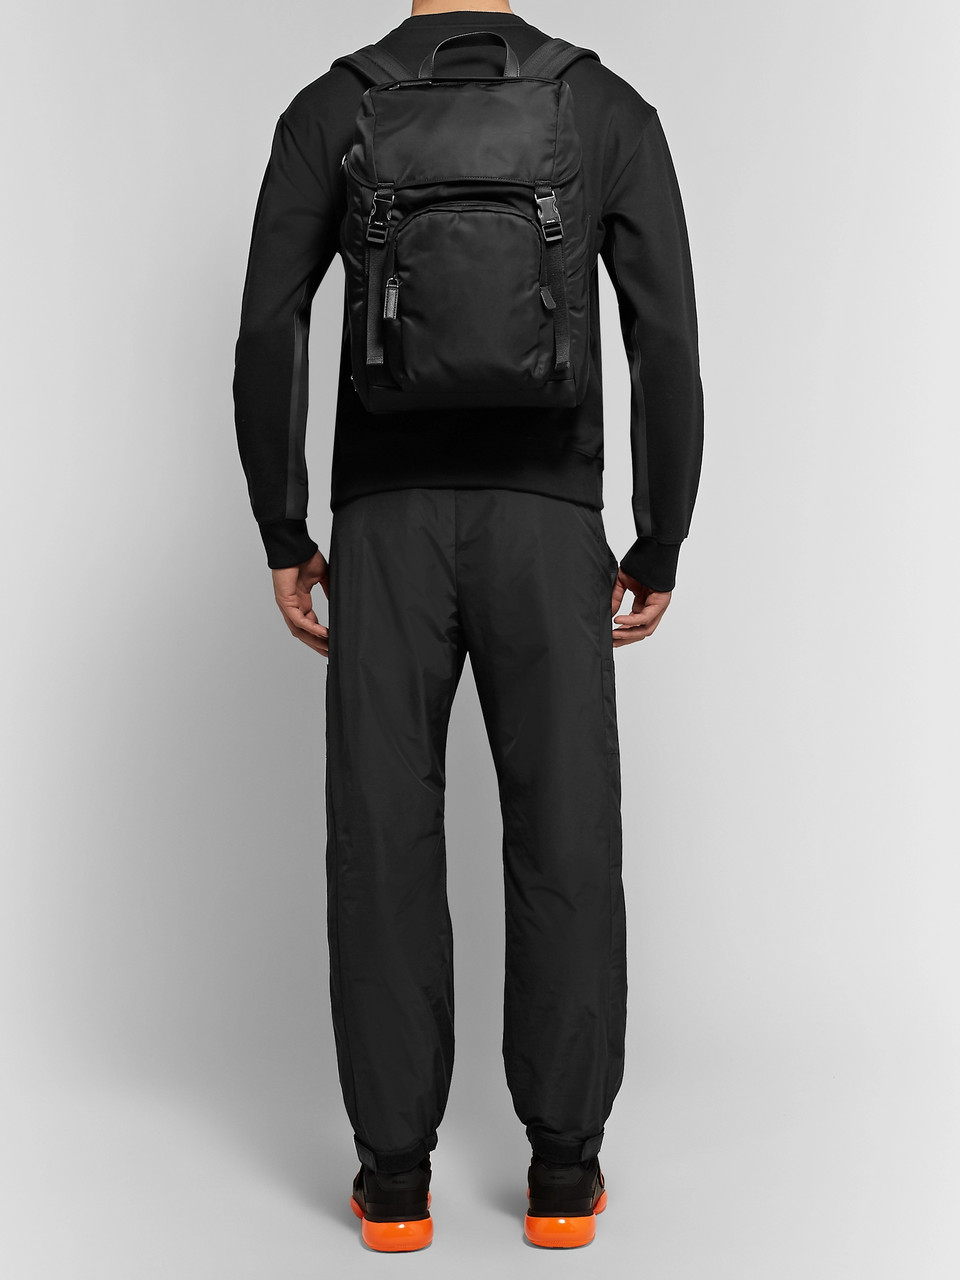 Prada Leather-Trimmed Nylon Backpack